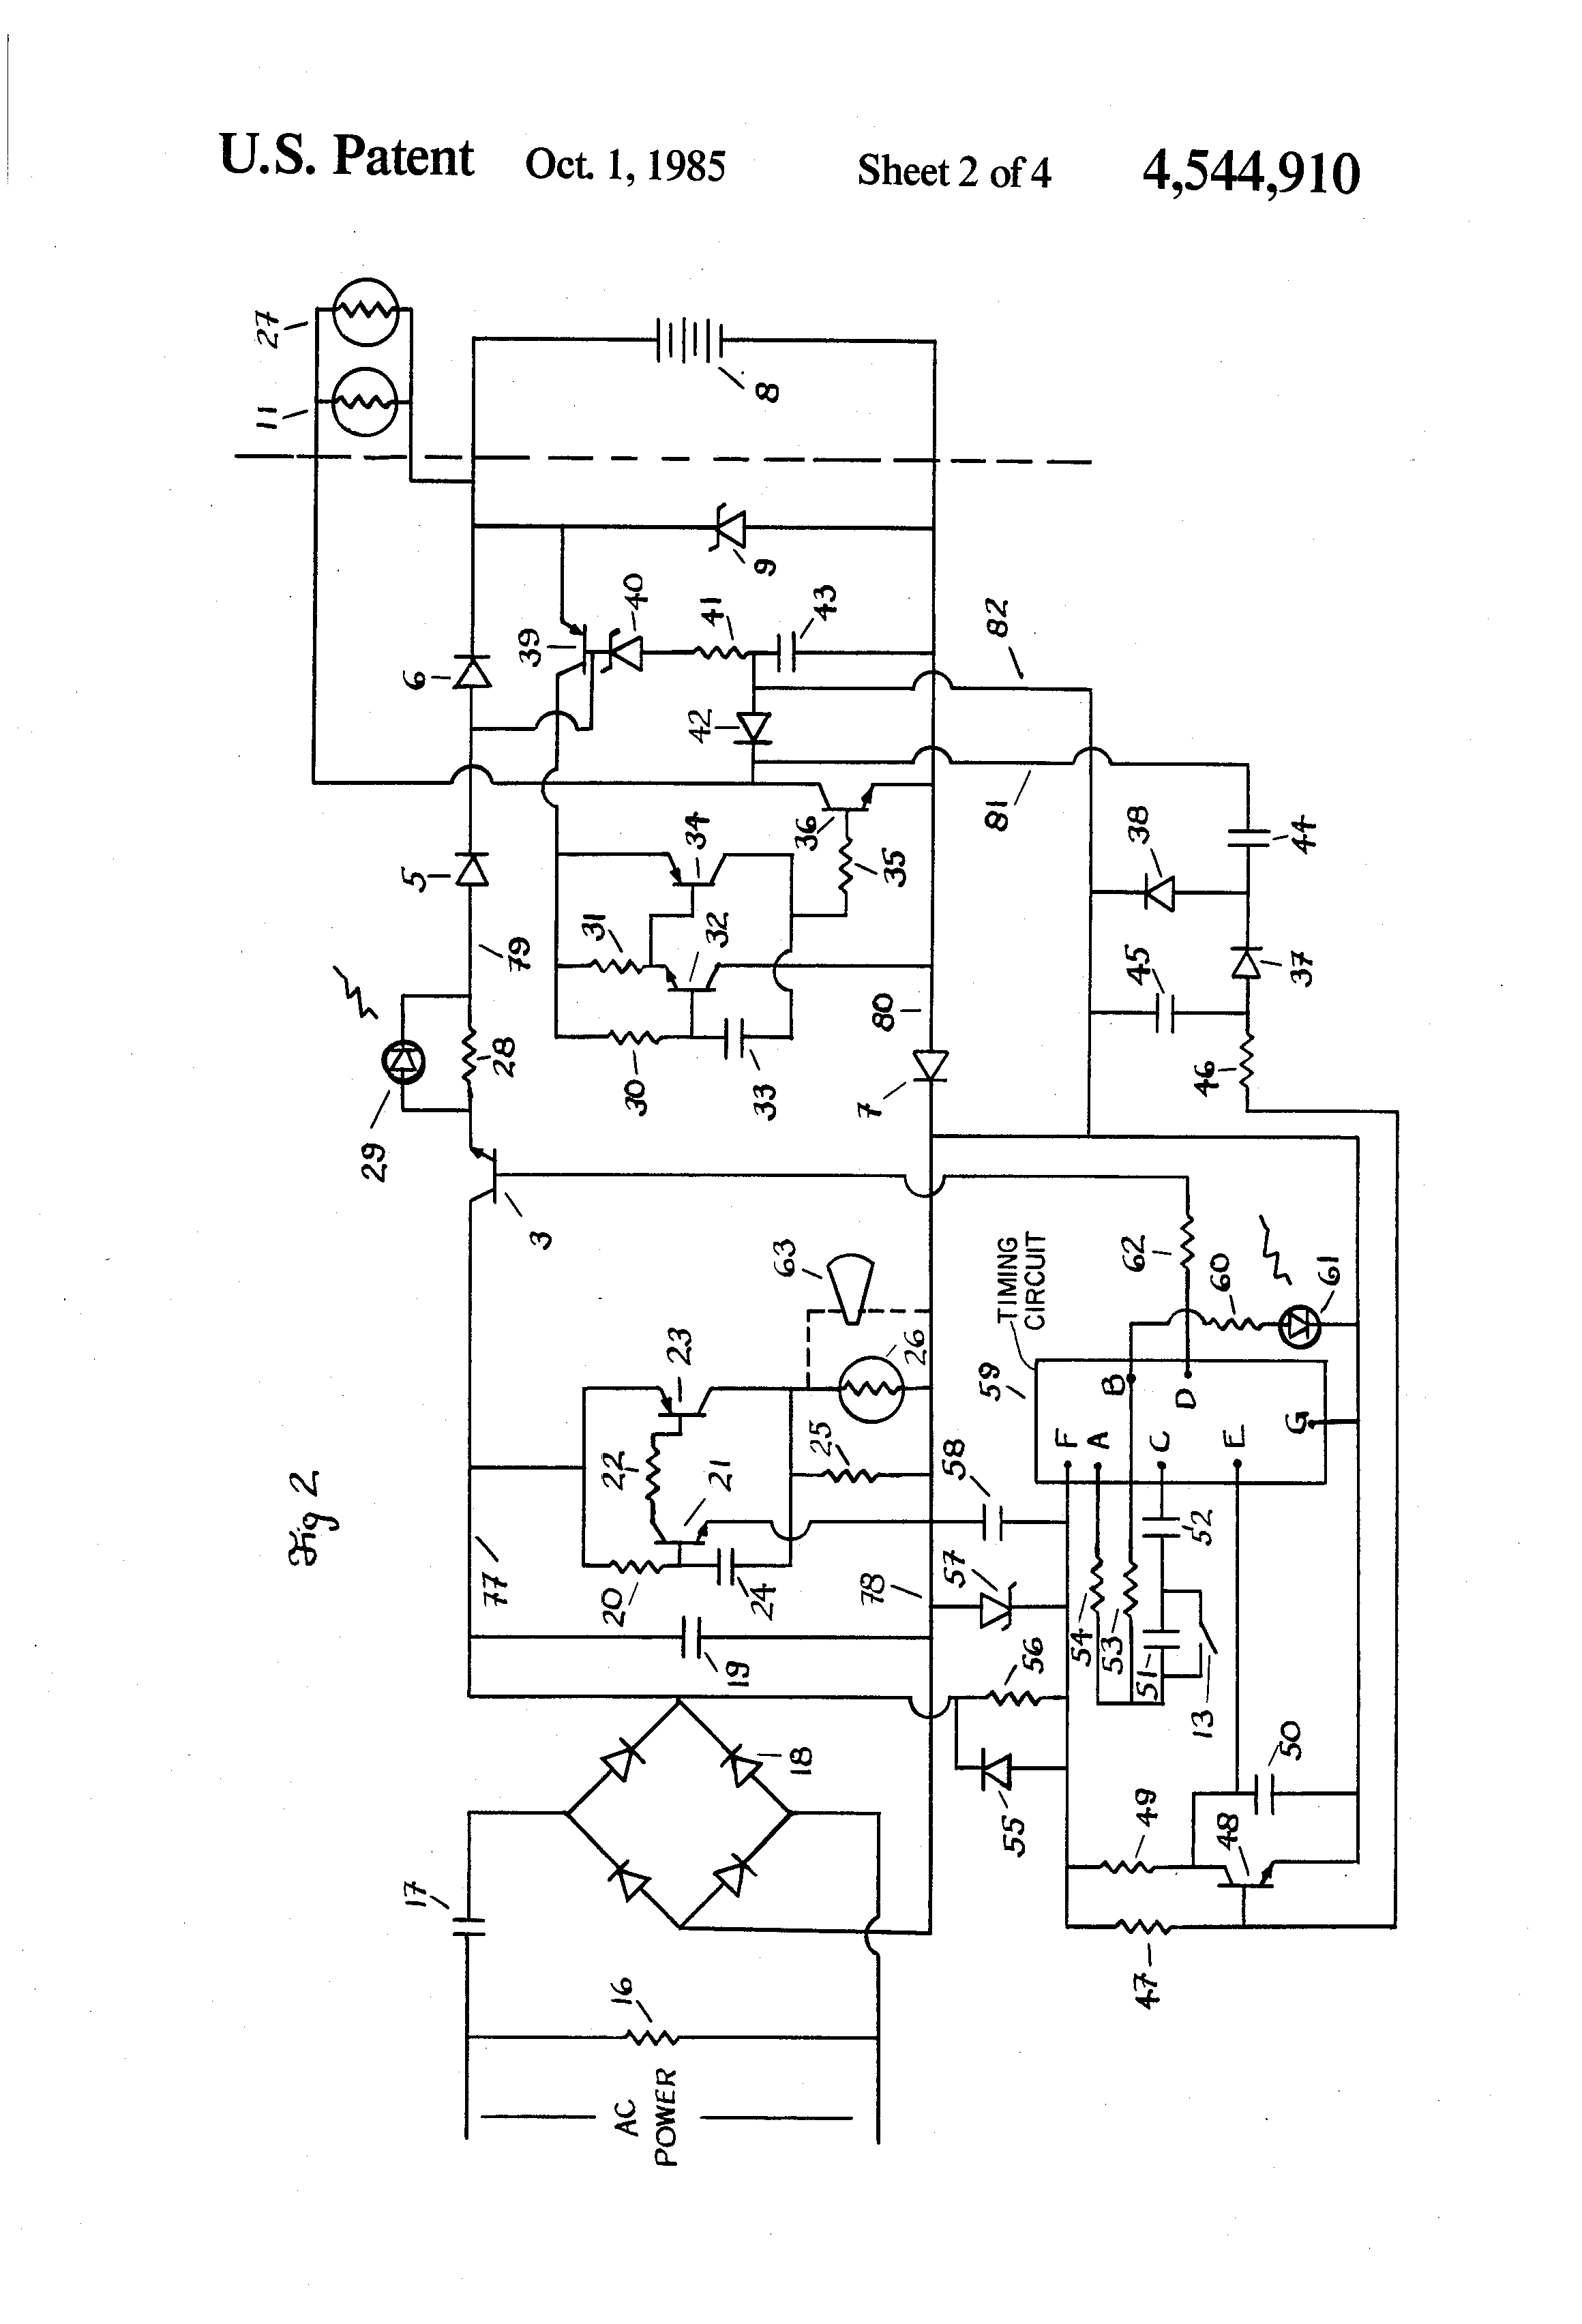 Exit Sign Diagram 17 Wiring Images Diagrams Schematic Us4544910 2 Patent Lamp Flashing System With Self Signs At Cita